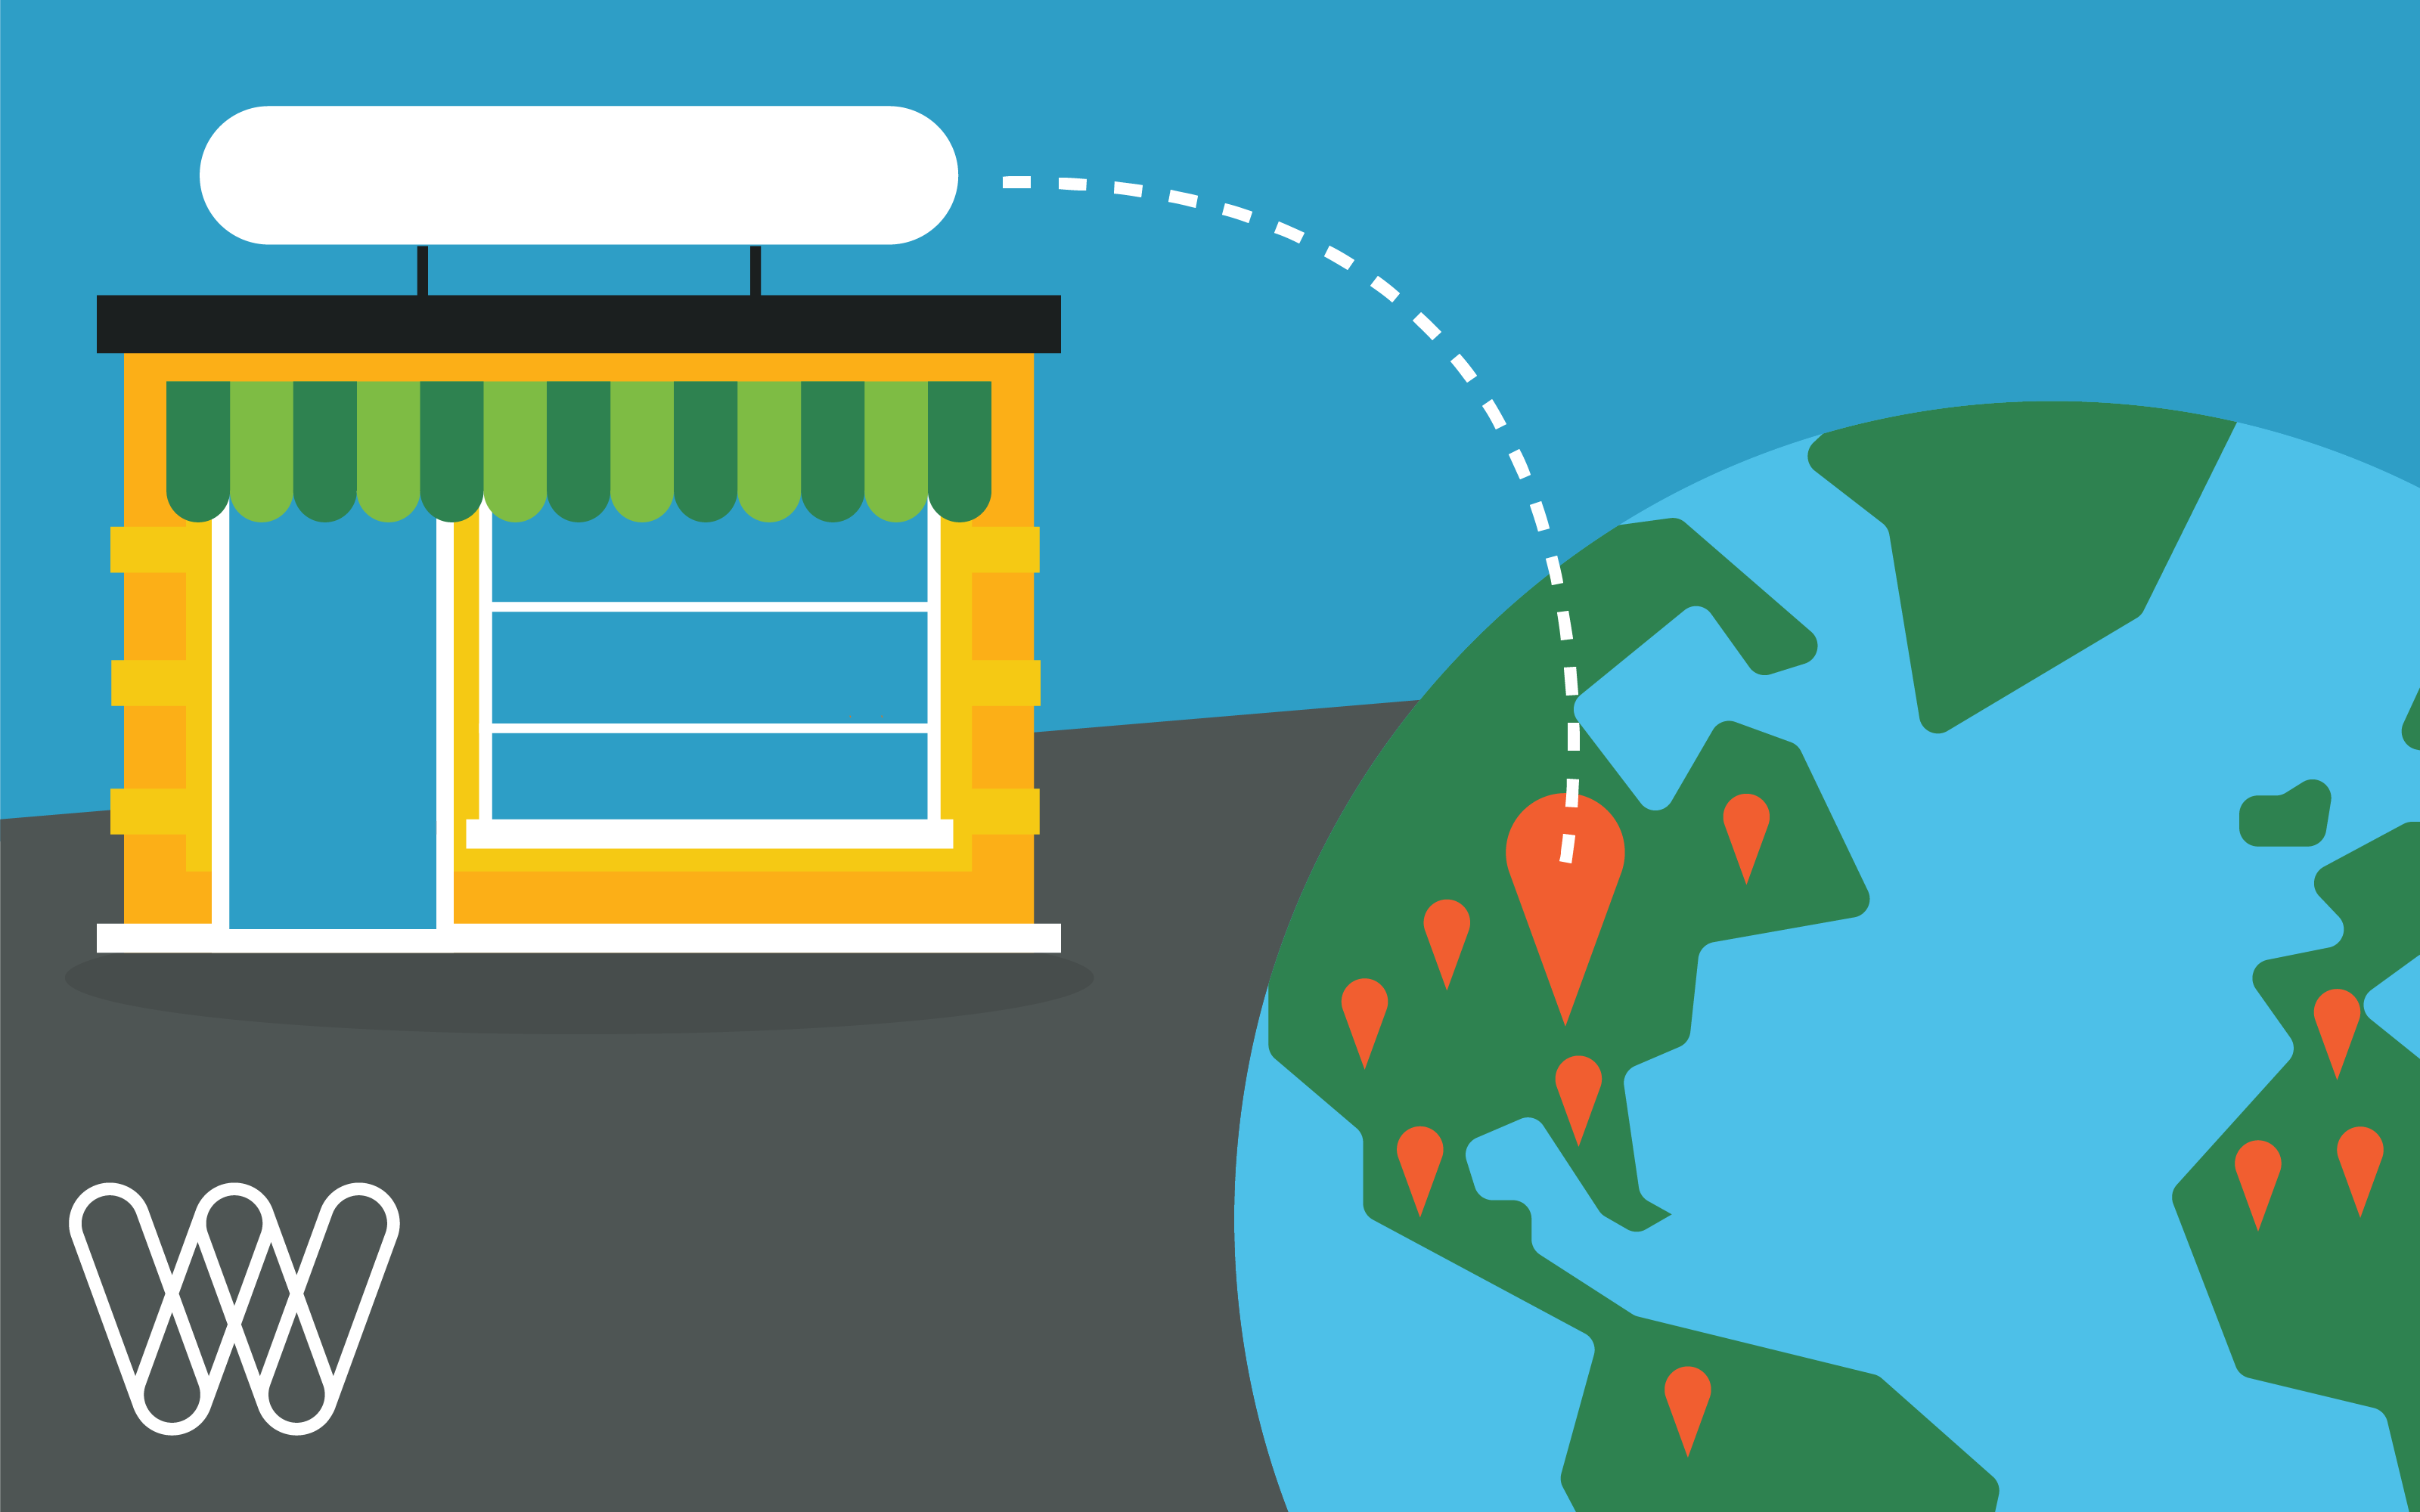 illustration of a storefront pointing to a location on a globe